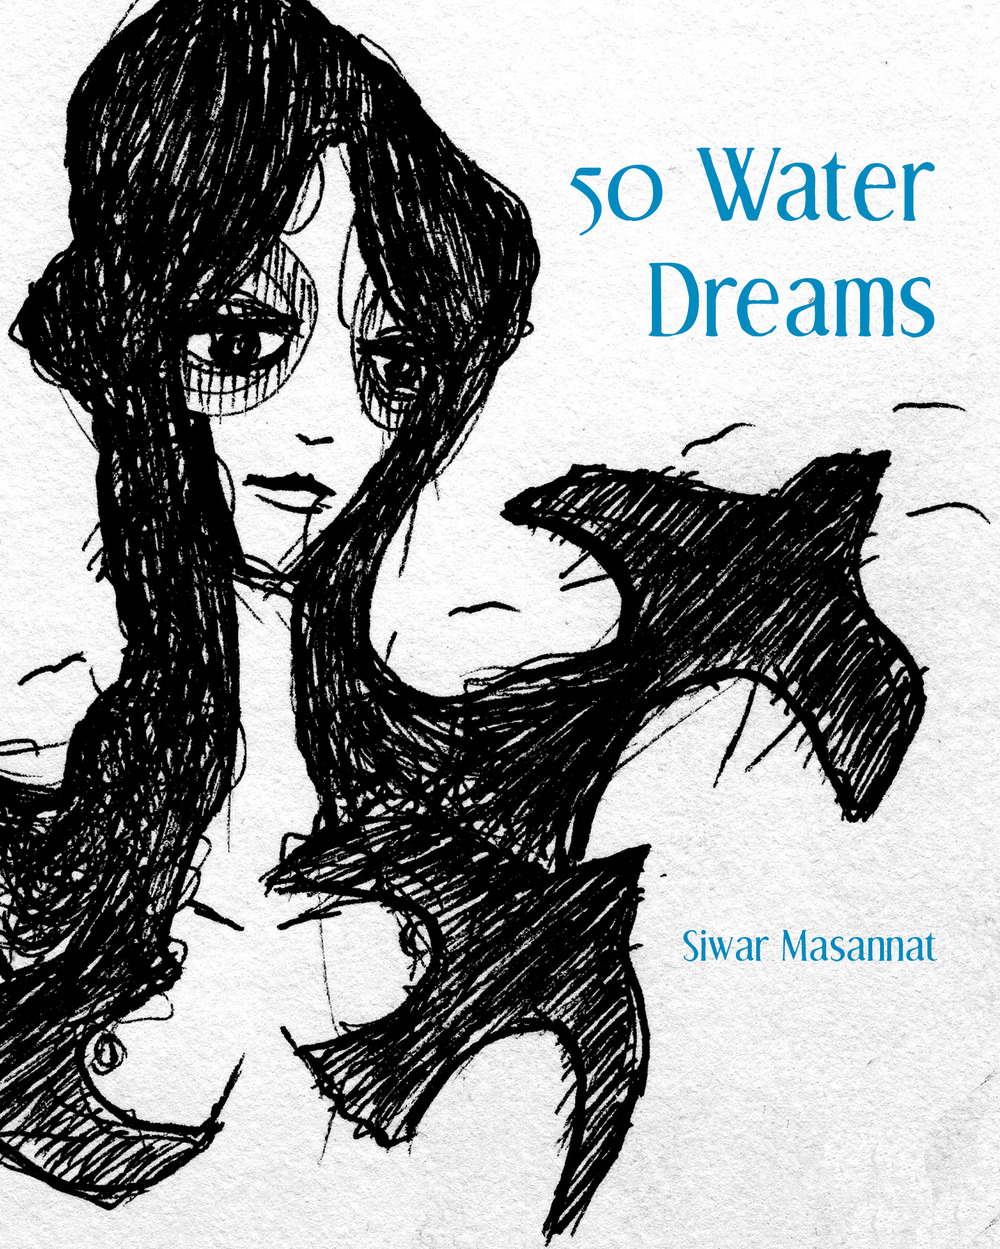 50 Water Dreams By Siwar Masannat Winner of the 2014 First Book Competition, selected by Ilya Kaminsky